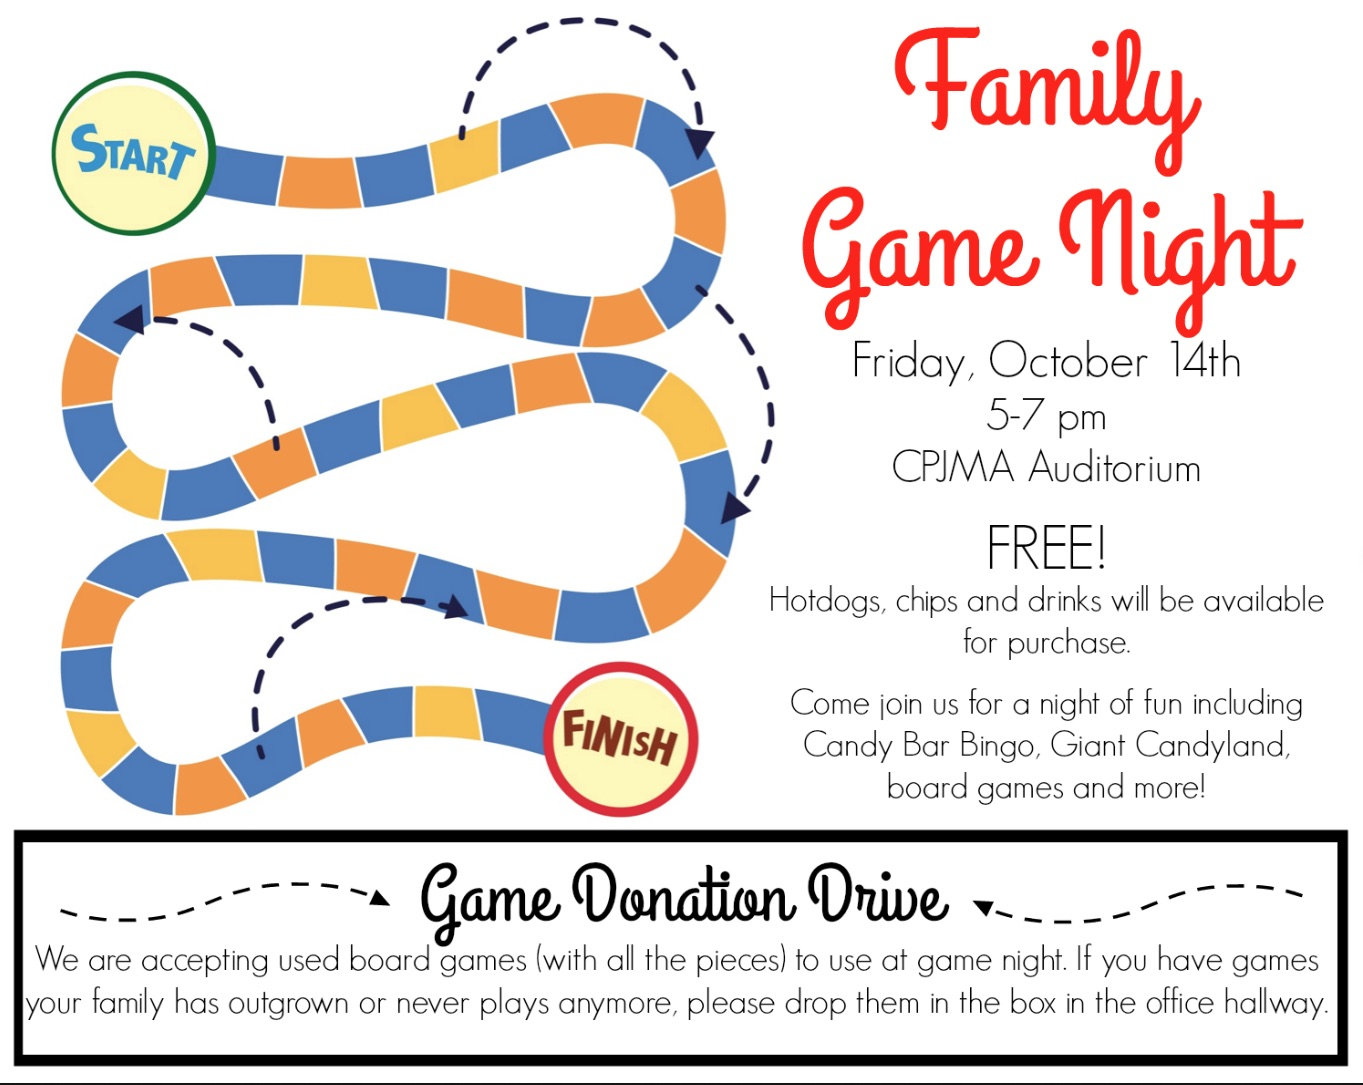 Family Game Night Flyer 2016